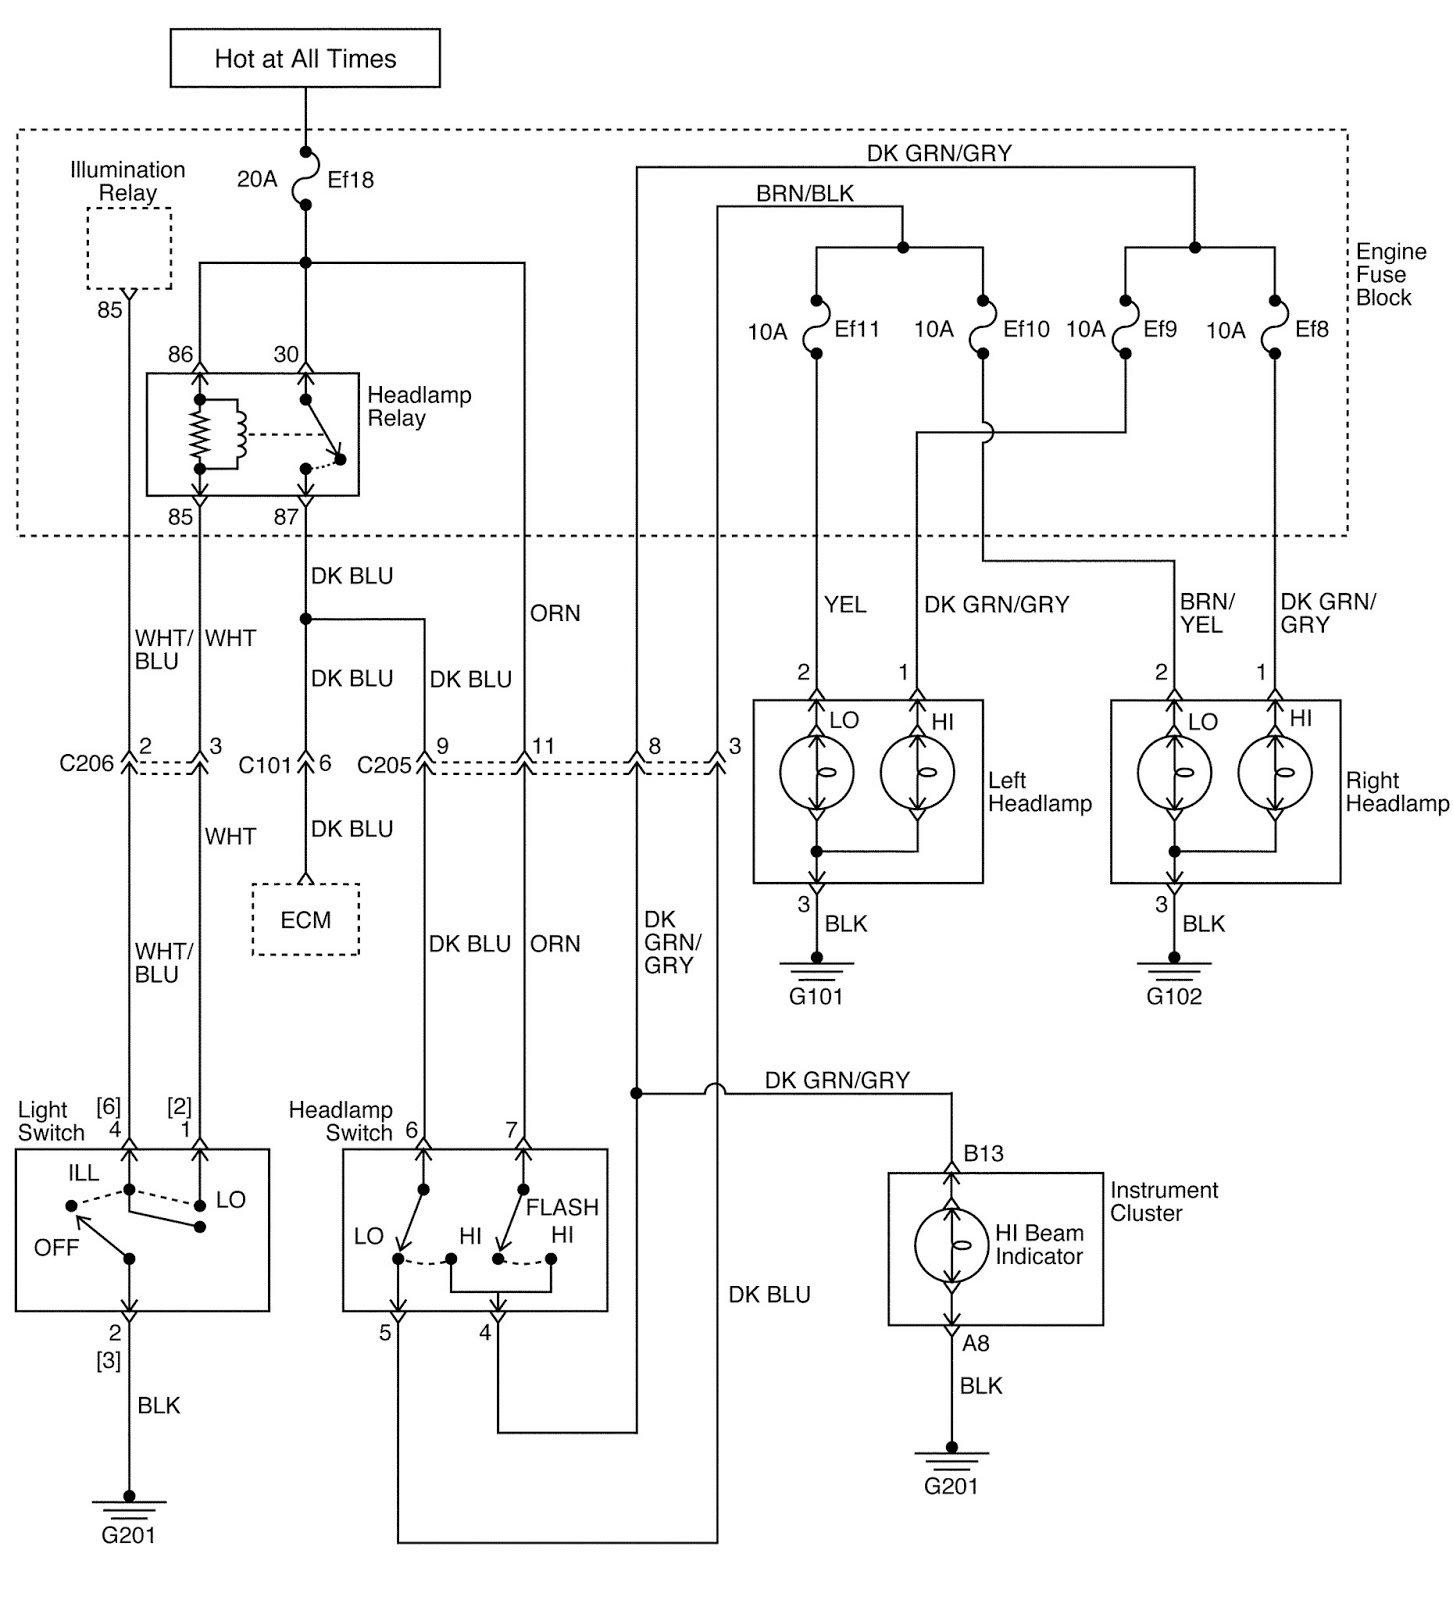 Daewoo Matiz 0 8 Wiring Diagram Real Hyundai I10 Car Lighting Systems Schematic And 2008